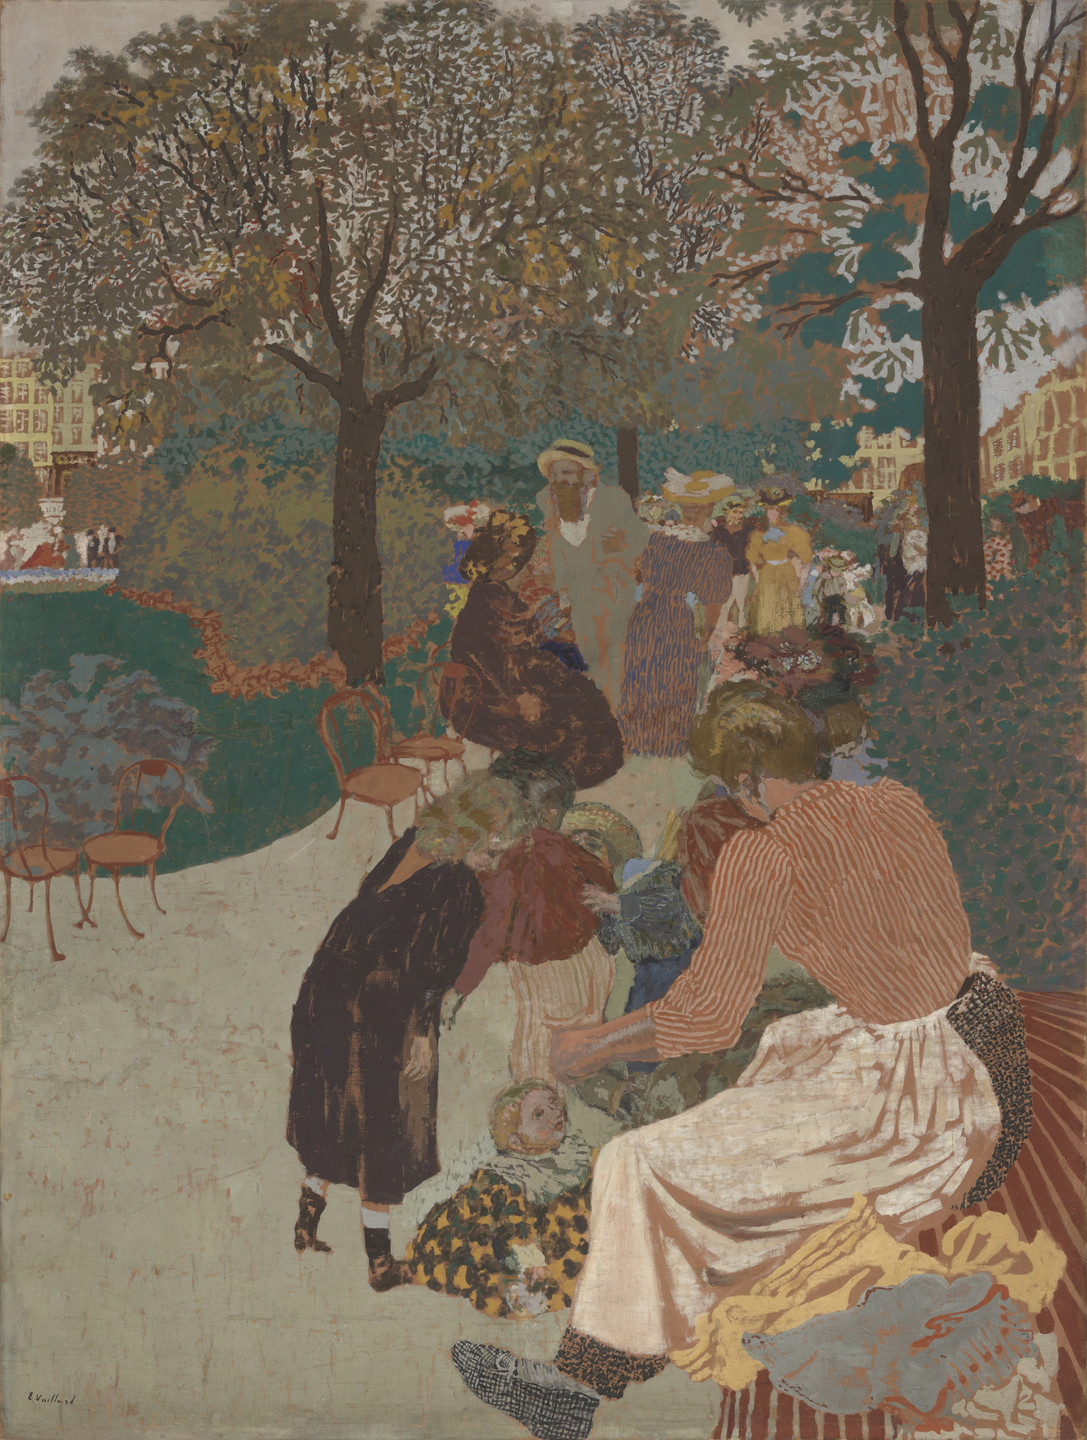 Édouard Vuillard. The Park. 1894 (reworked in 1908)